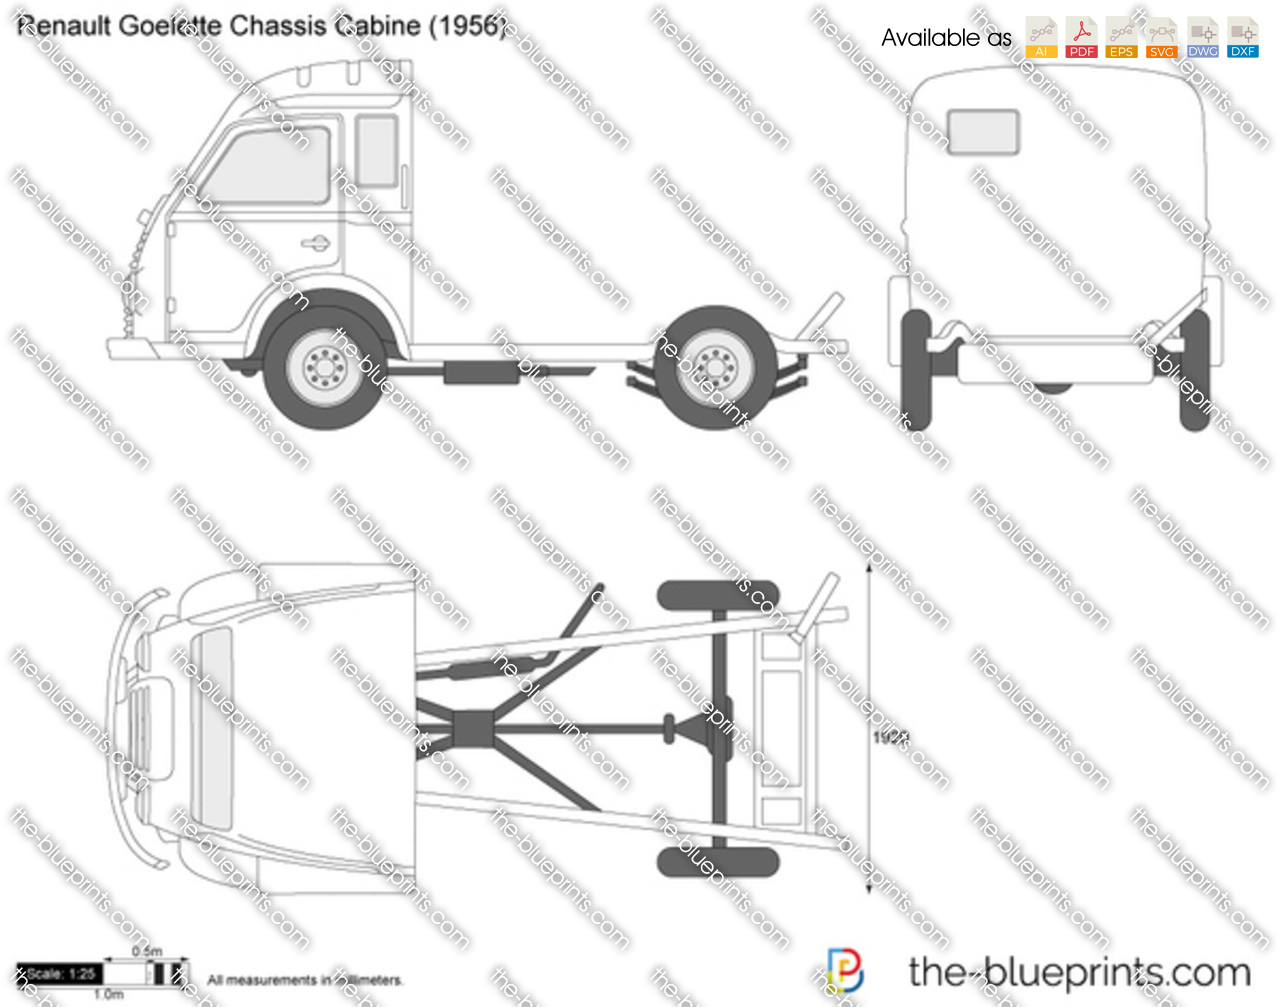 Renault Goelette Chassis Cabine